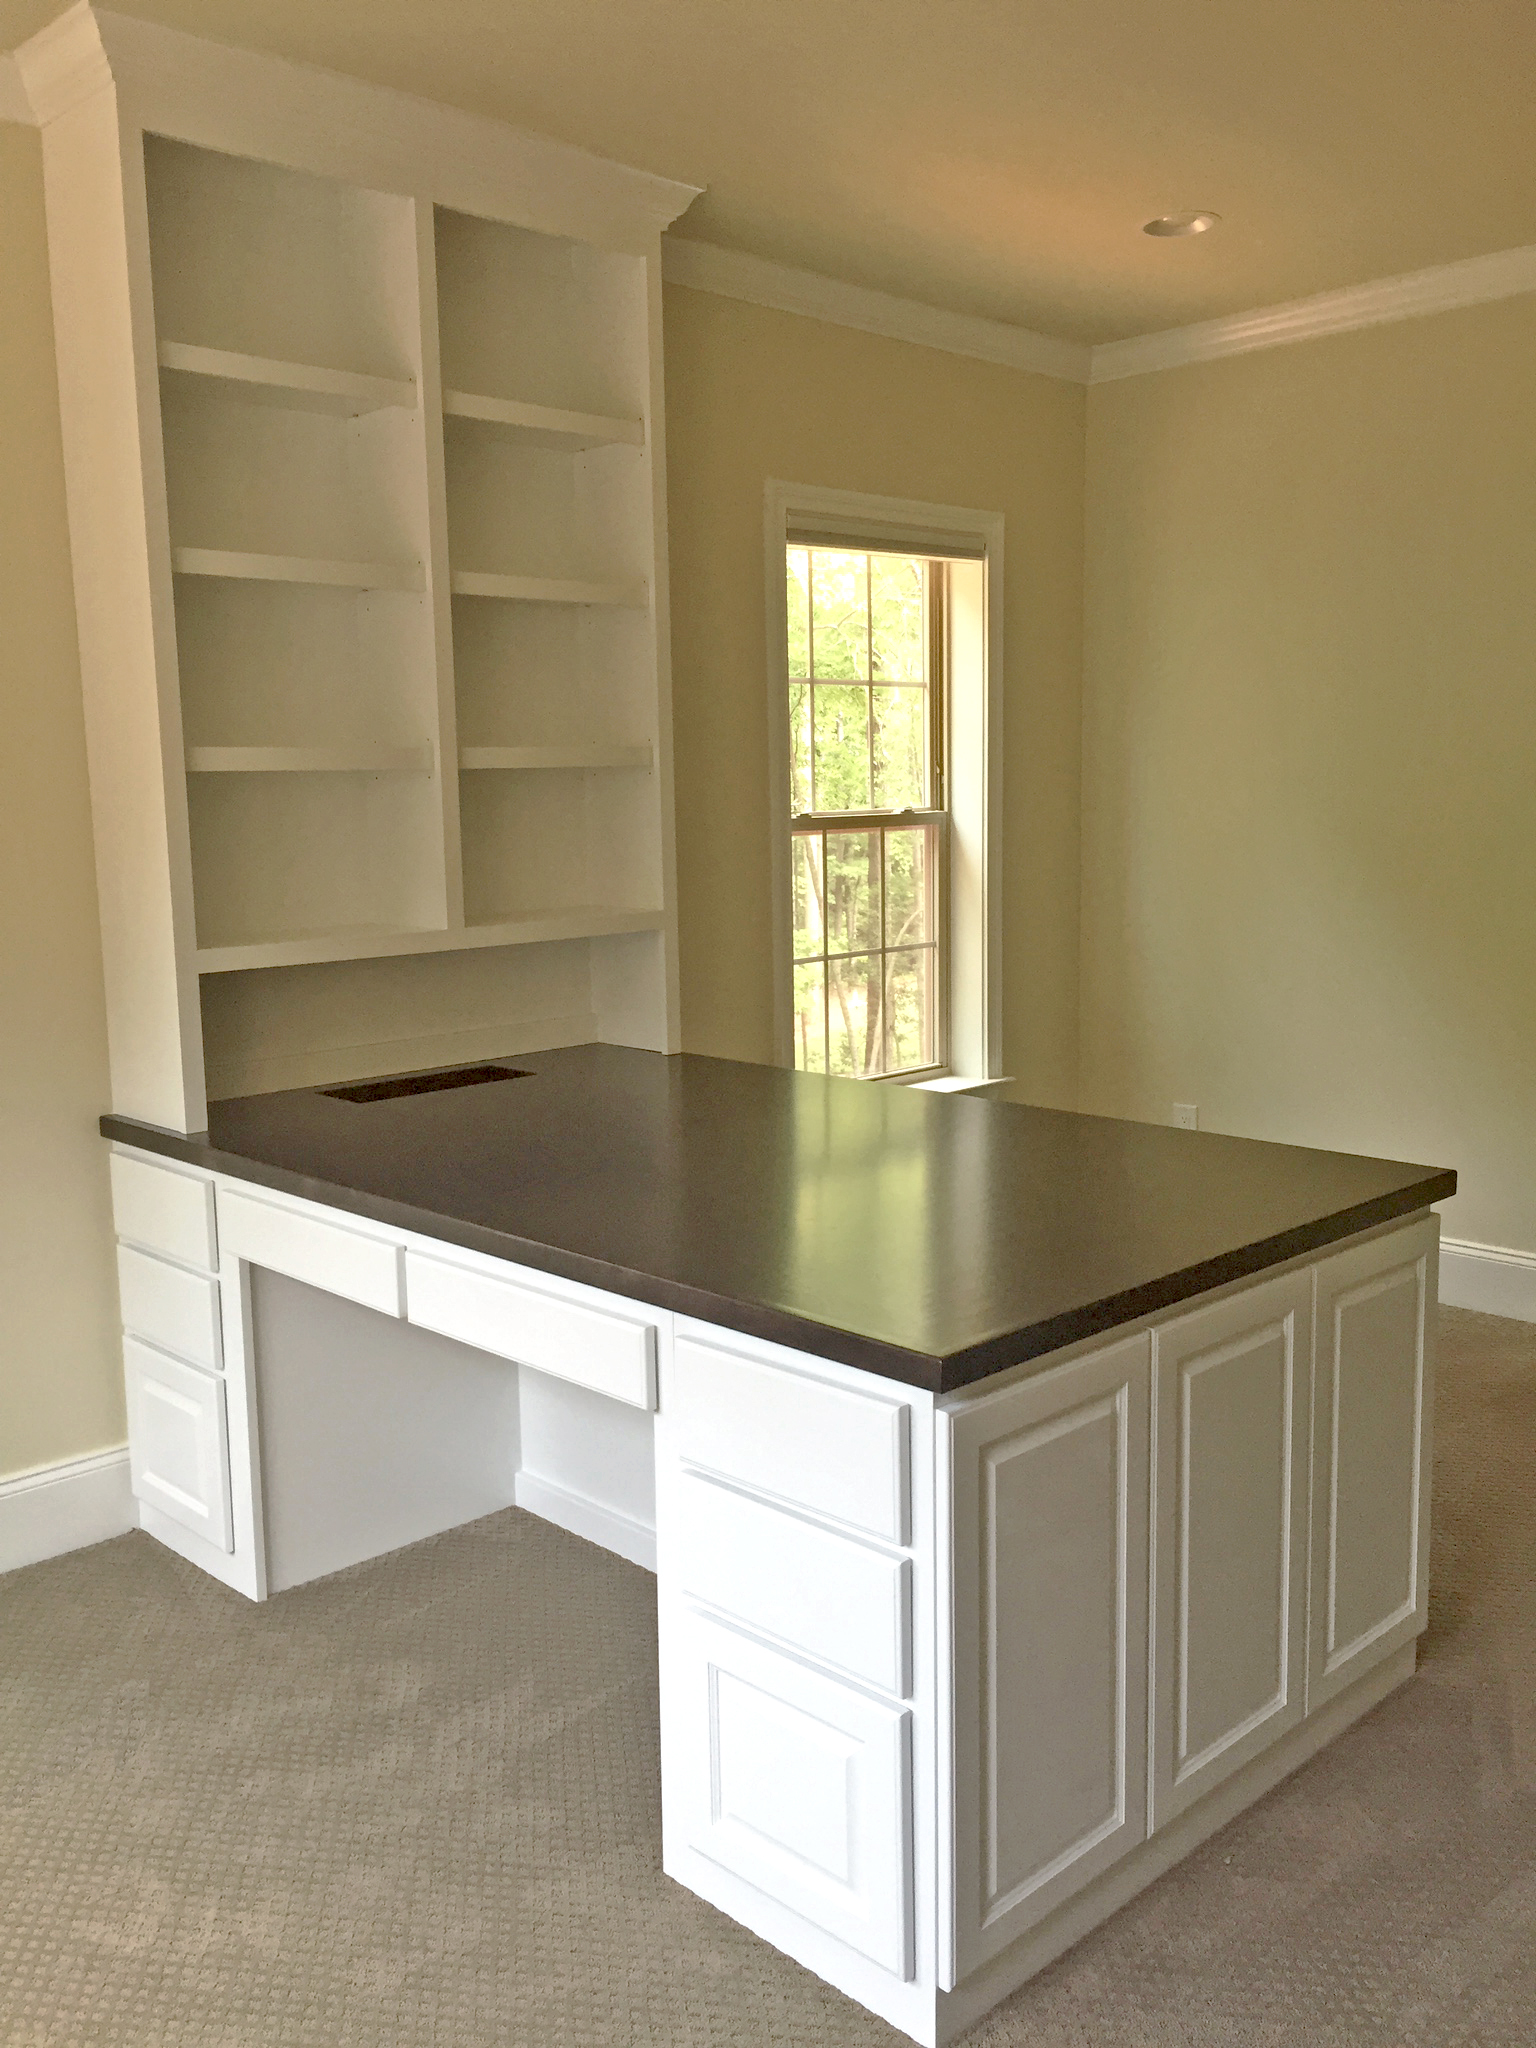 Nabors - Custom Desk with Adjustable Shelves, Drawers, Crown Detail & Stained Top.jpg